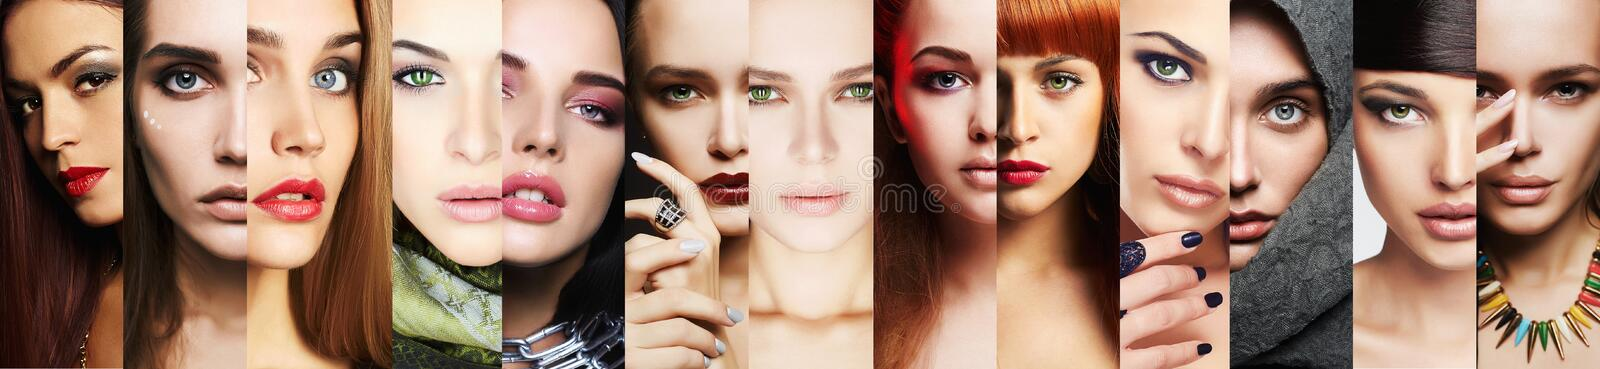 Beauty collage.Faces of women.Make-up close-up stock photography